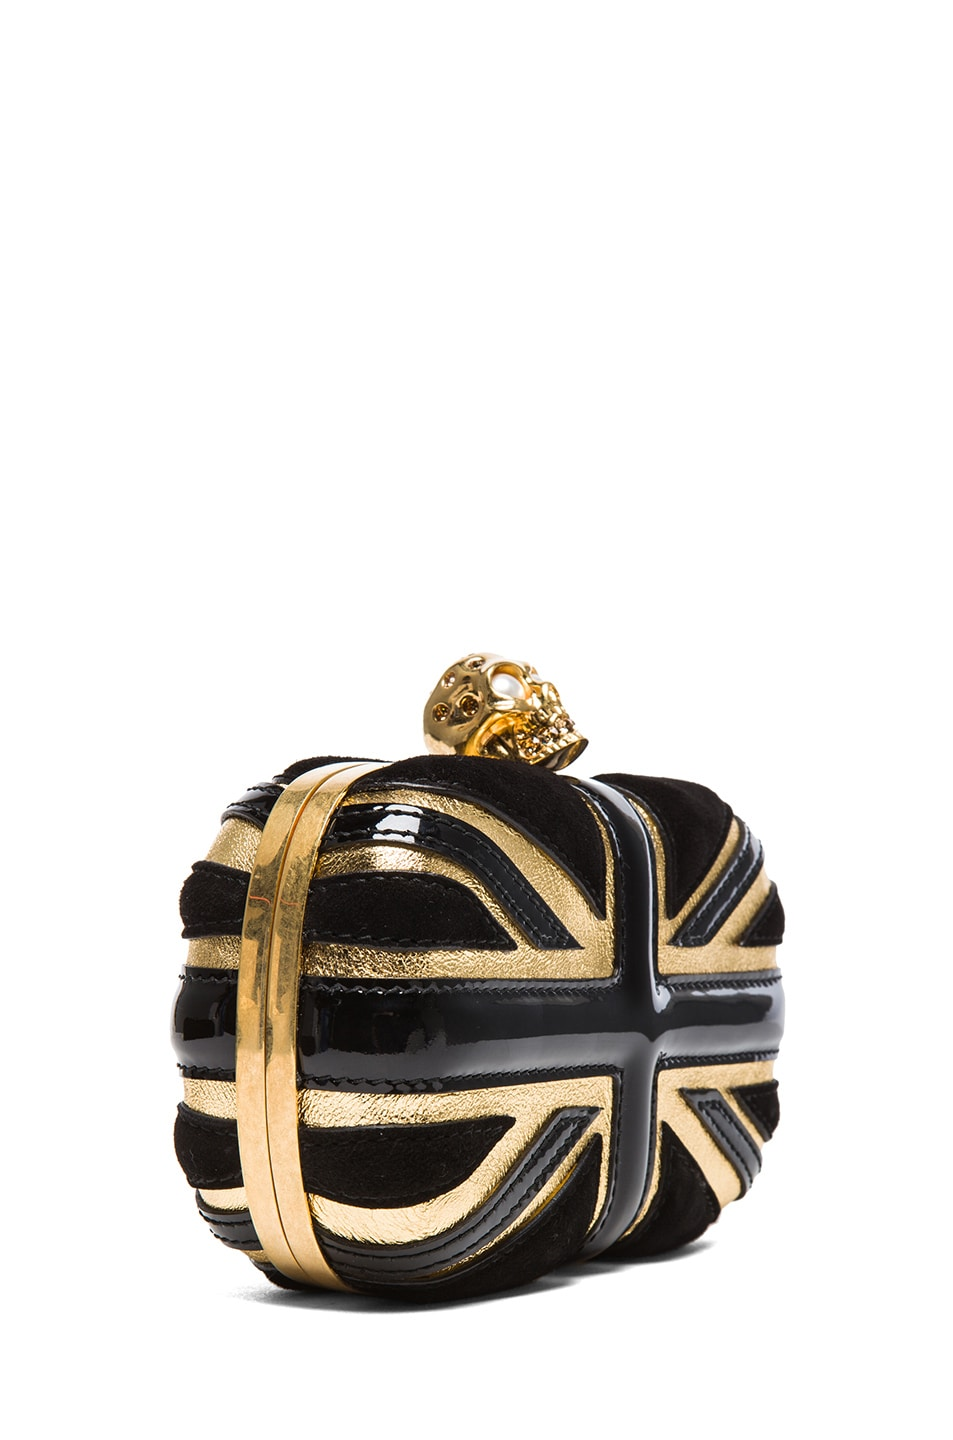 Image 3 of Alexander McQueen Britannia Skull Box Clutch in Gold & Black